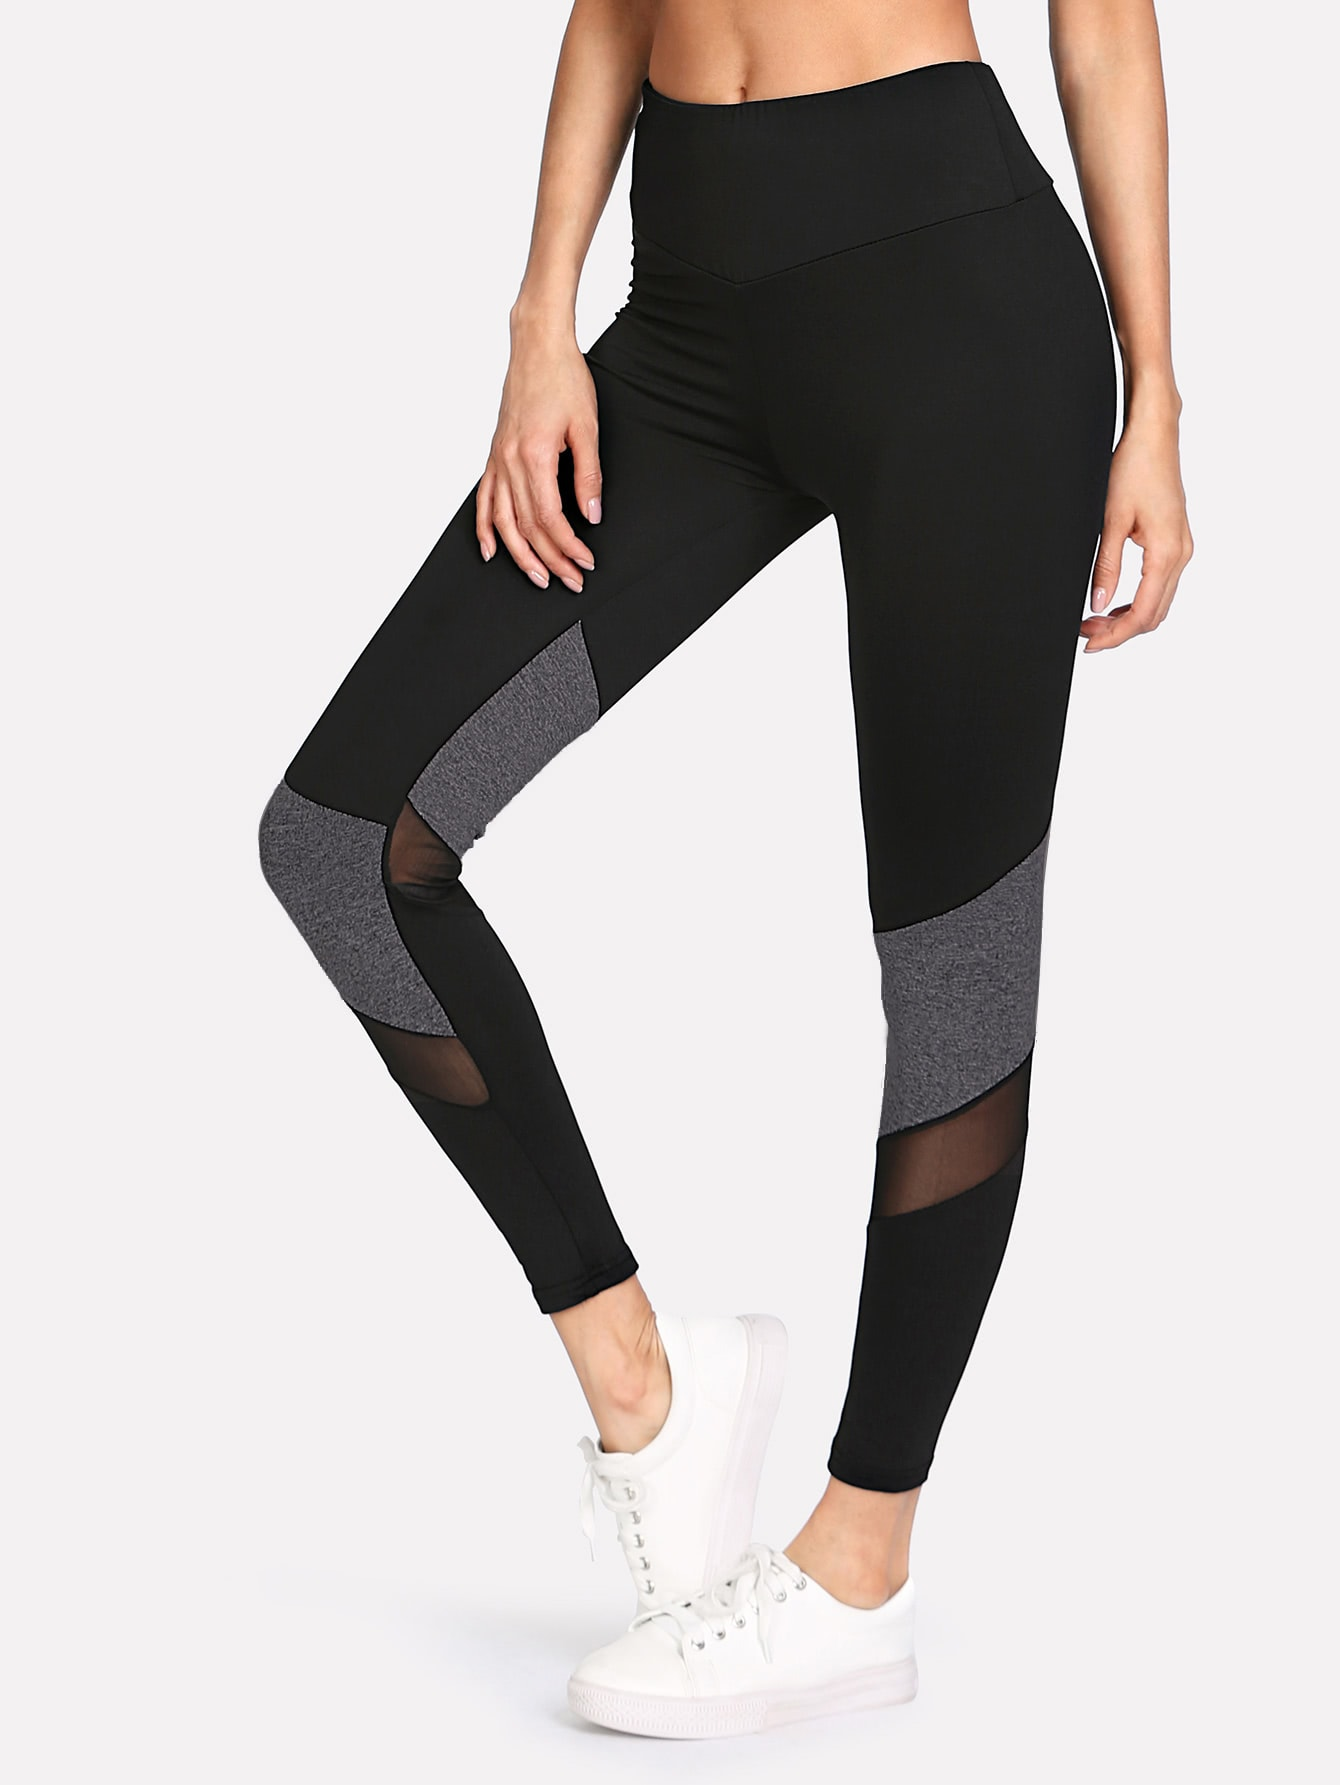 Contrast Mesh Insert Leggings side panel mesh insert camo leggings